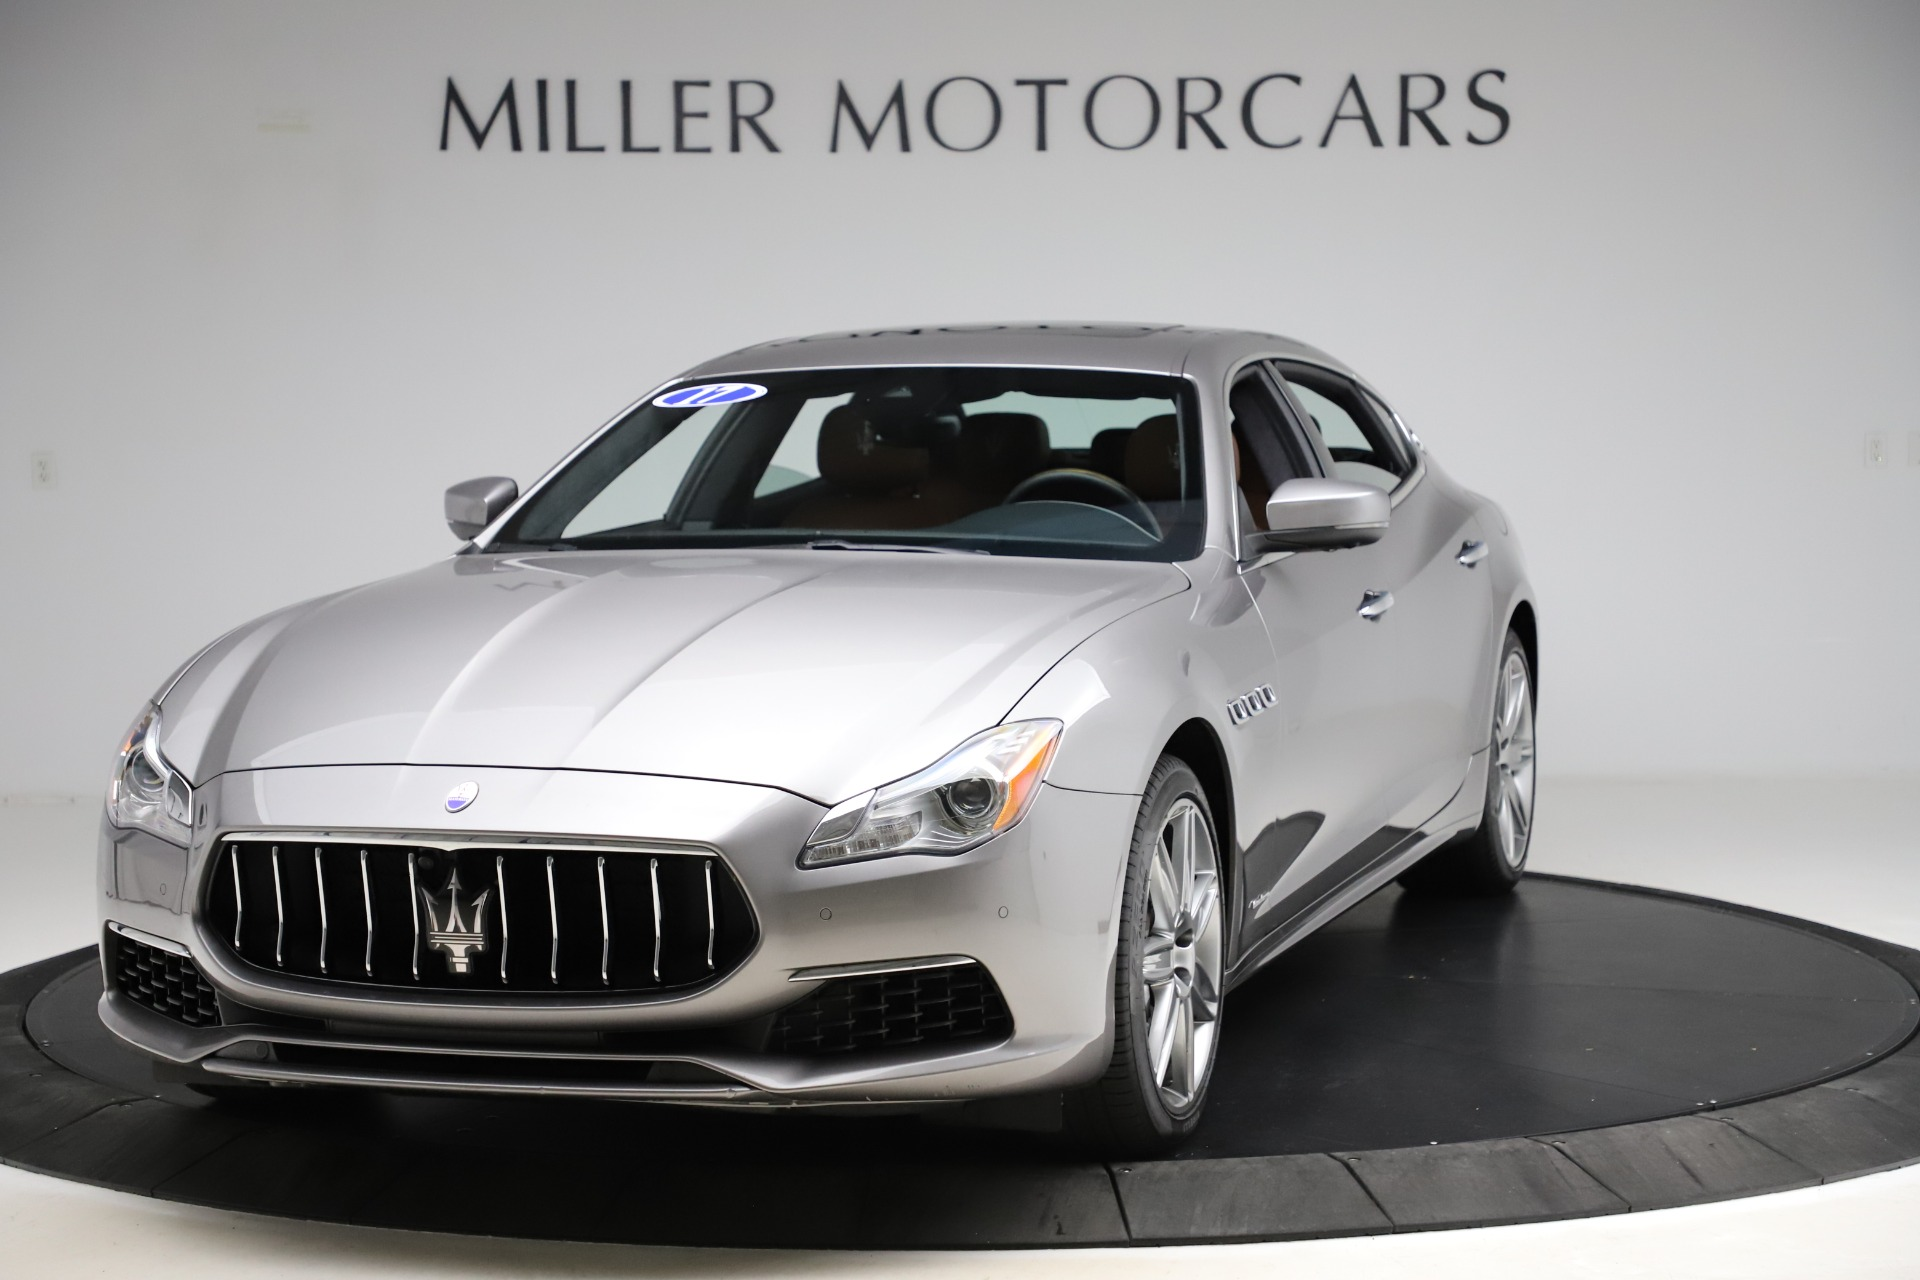 Used 2017 Maserati Quattroporte S Q4 GranLusso for sale Sold at Bentley Greenwich in Greenwich CT 06830 1